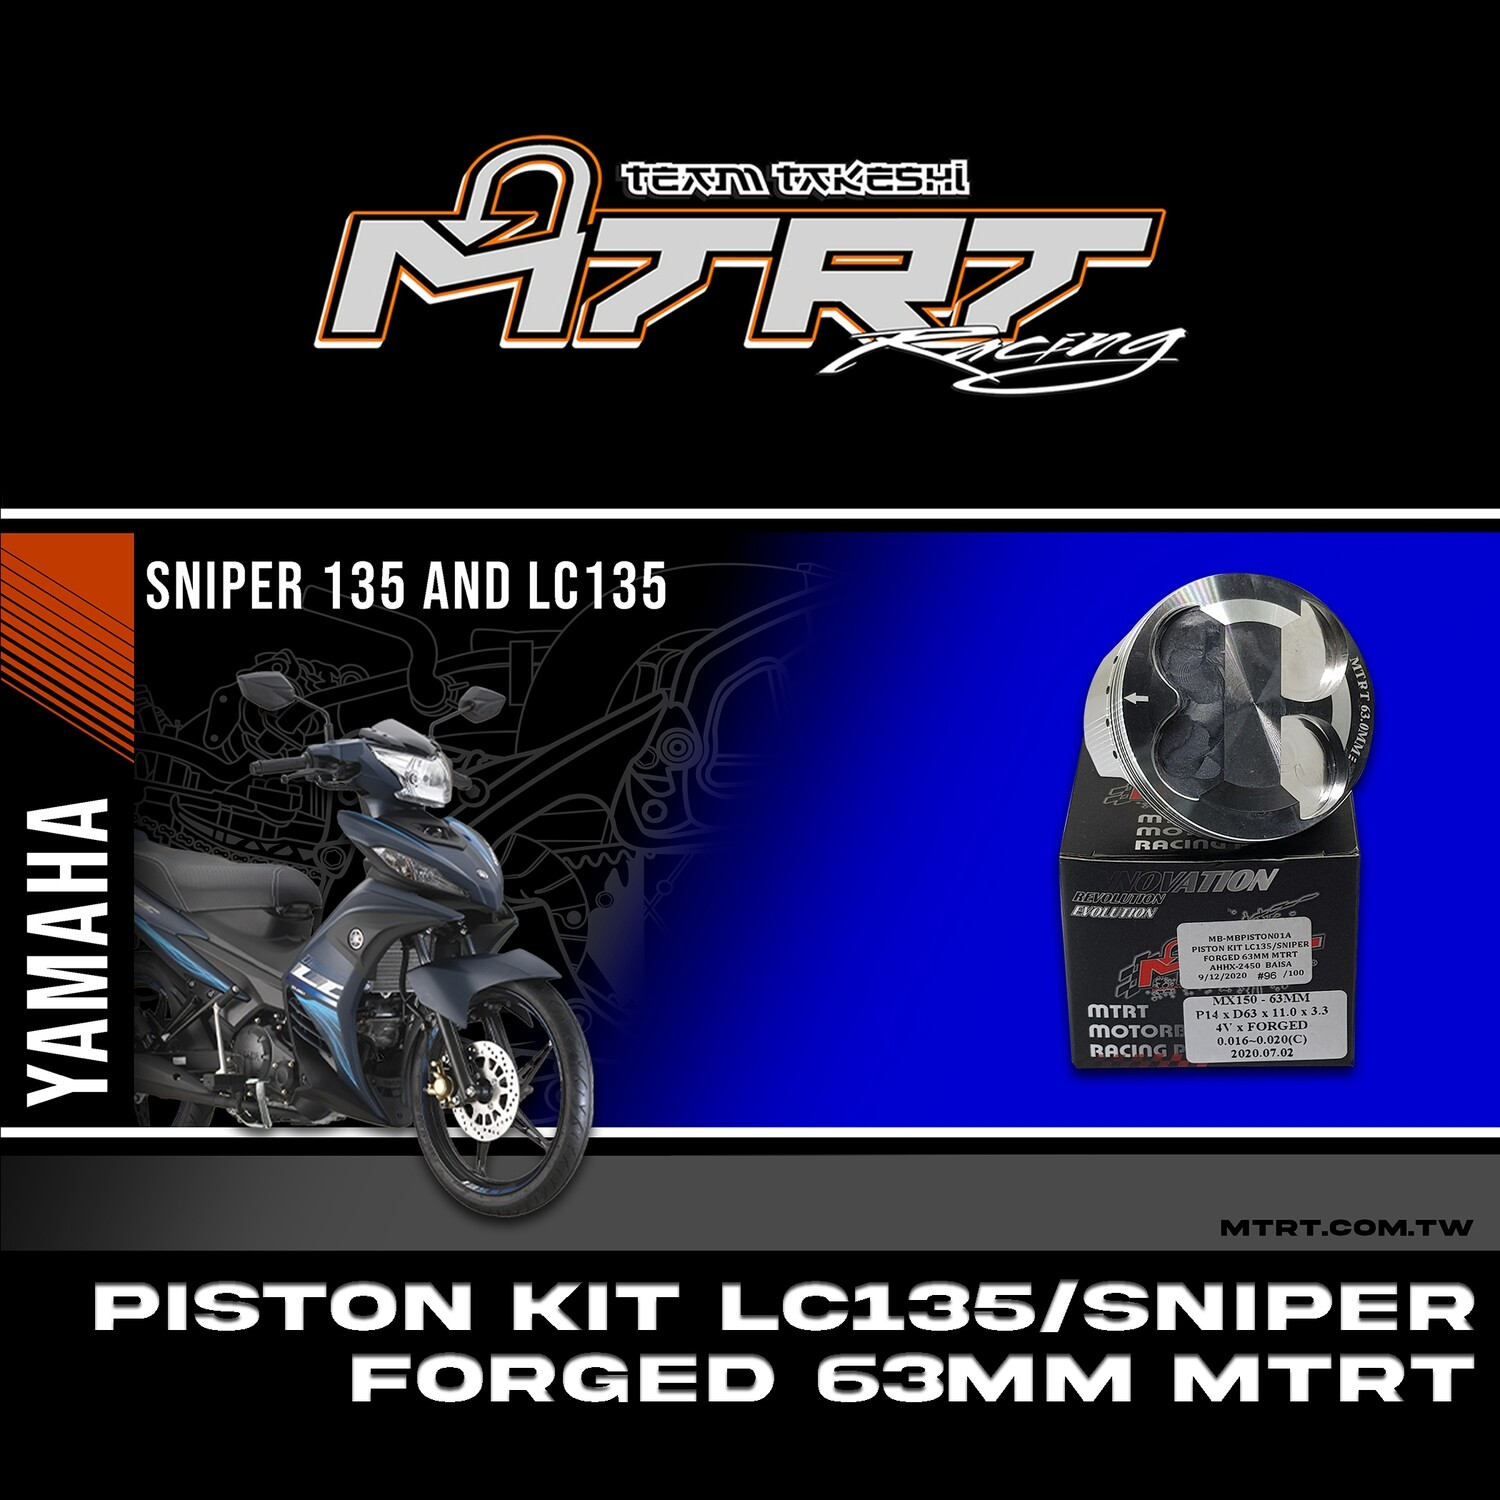 PISTON  KIT  LC135/SNIPER  Forged 63MM MTRT